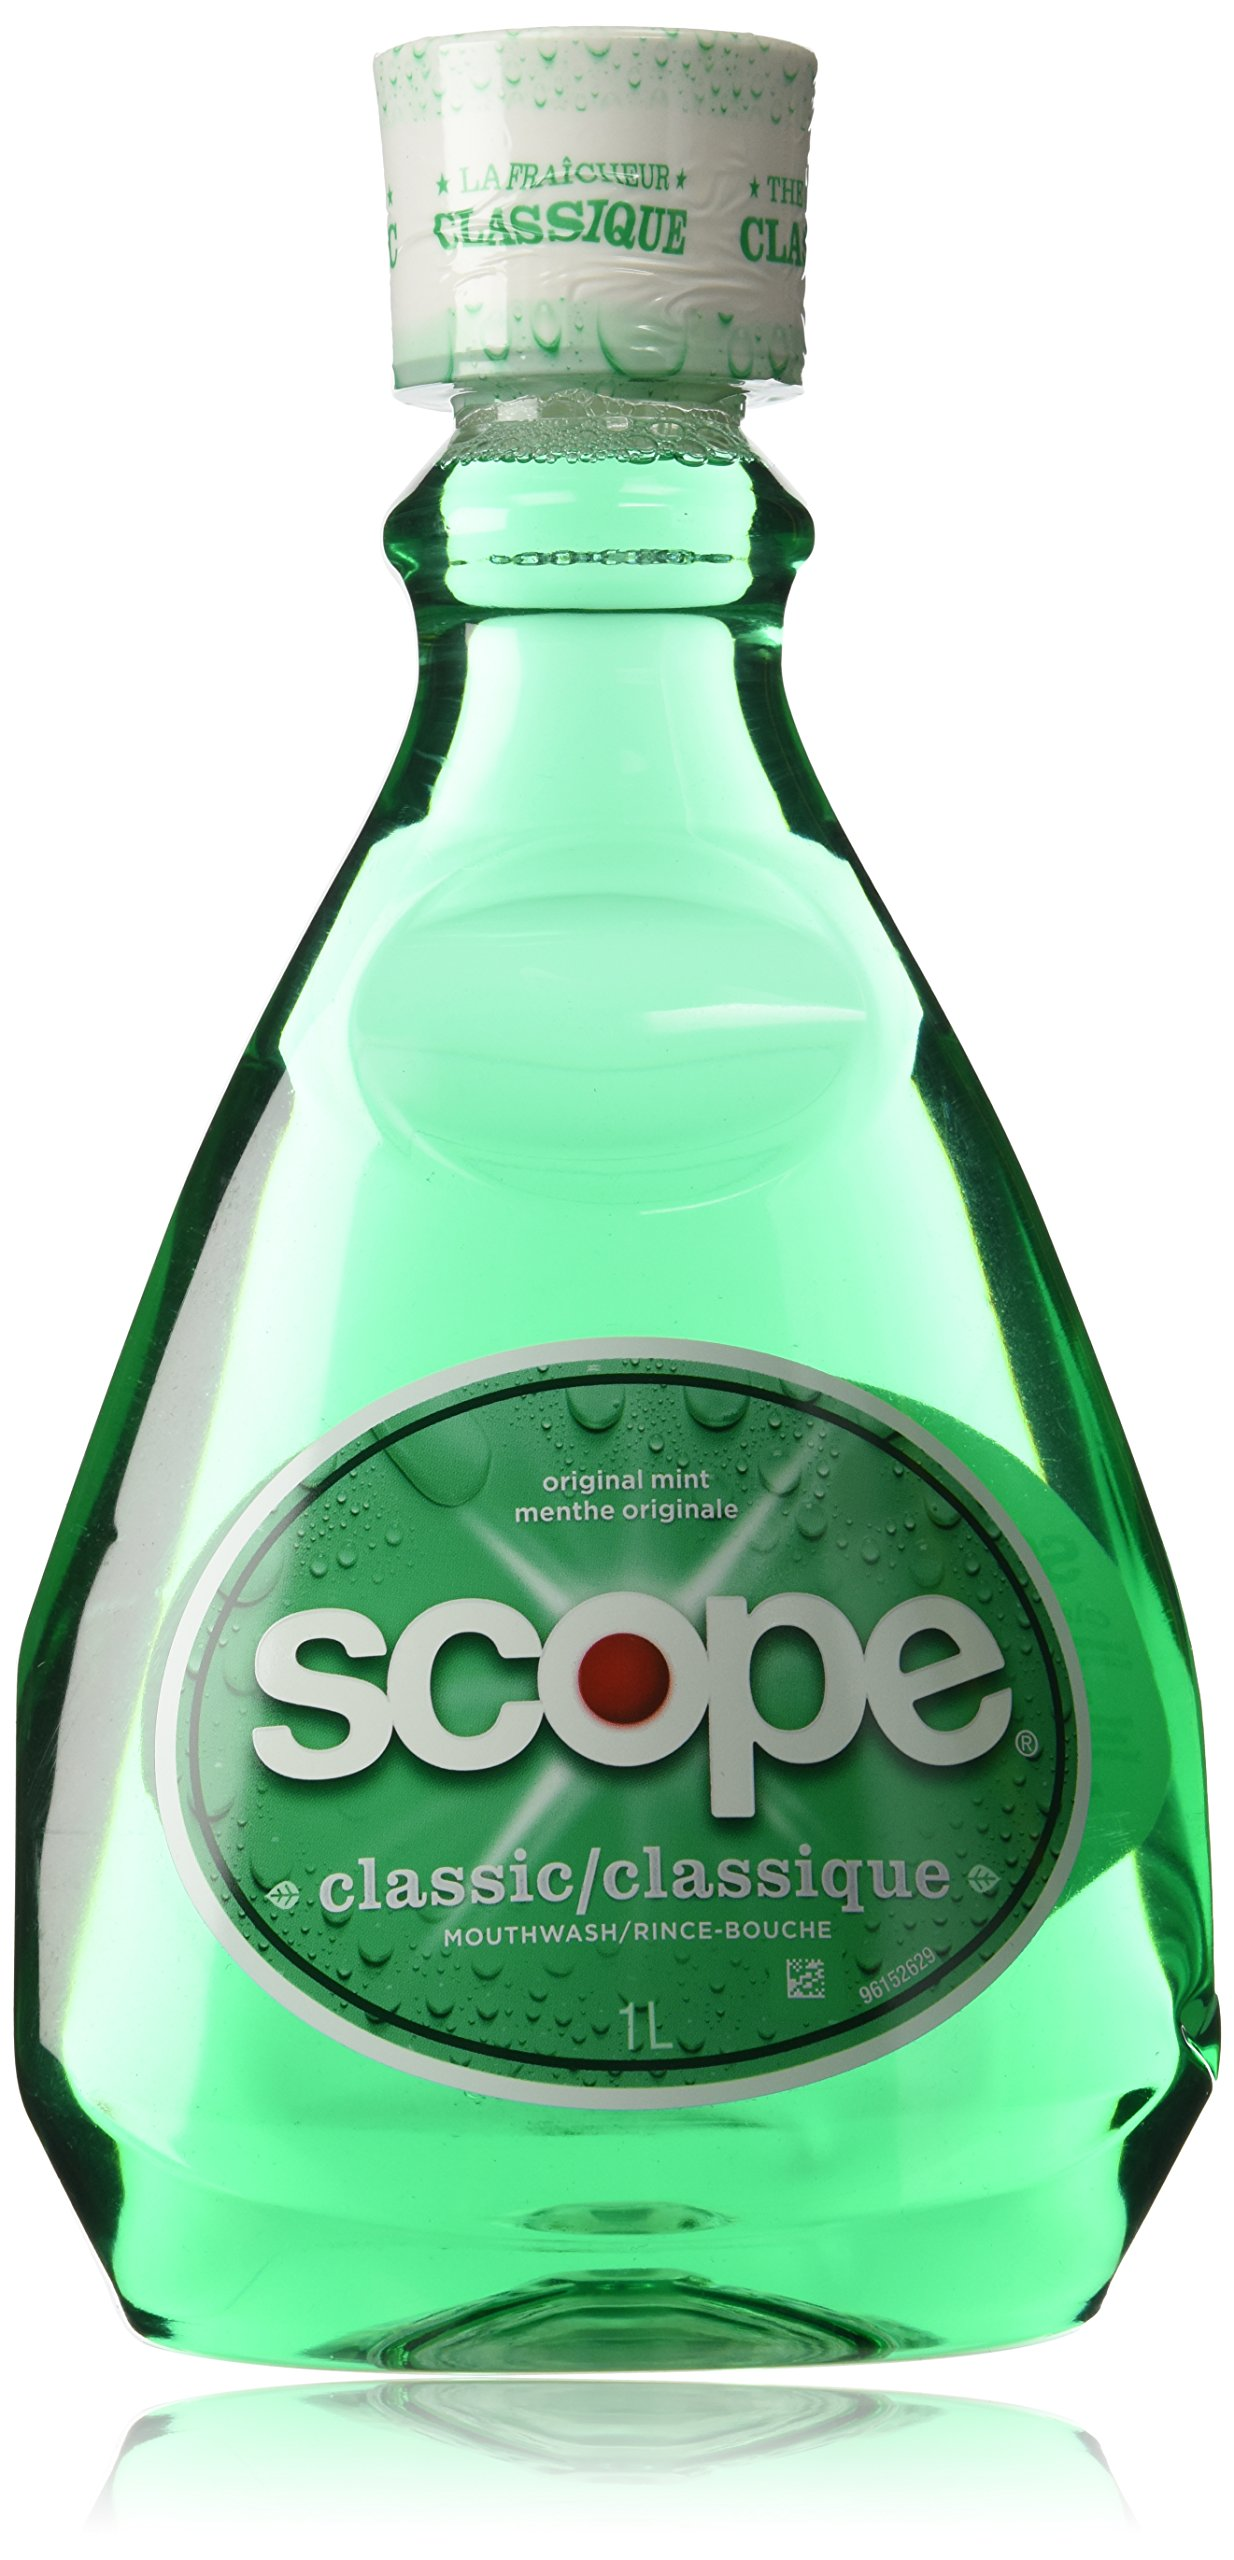 Scope Mouthwash - bottle